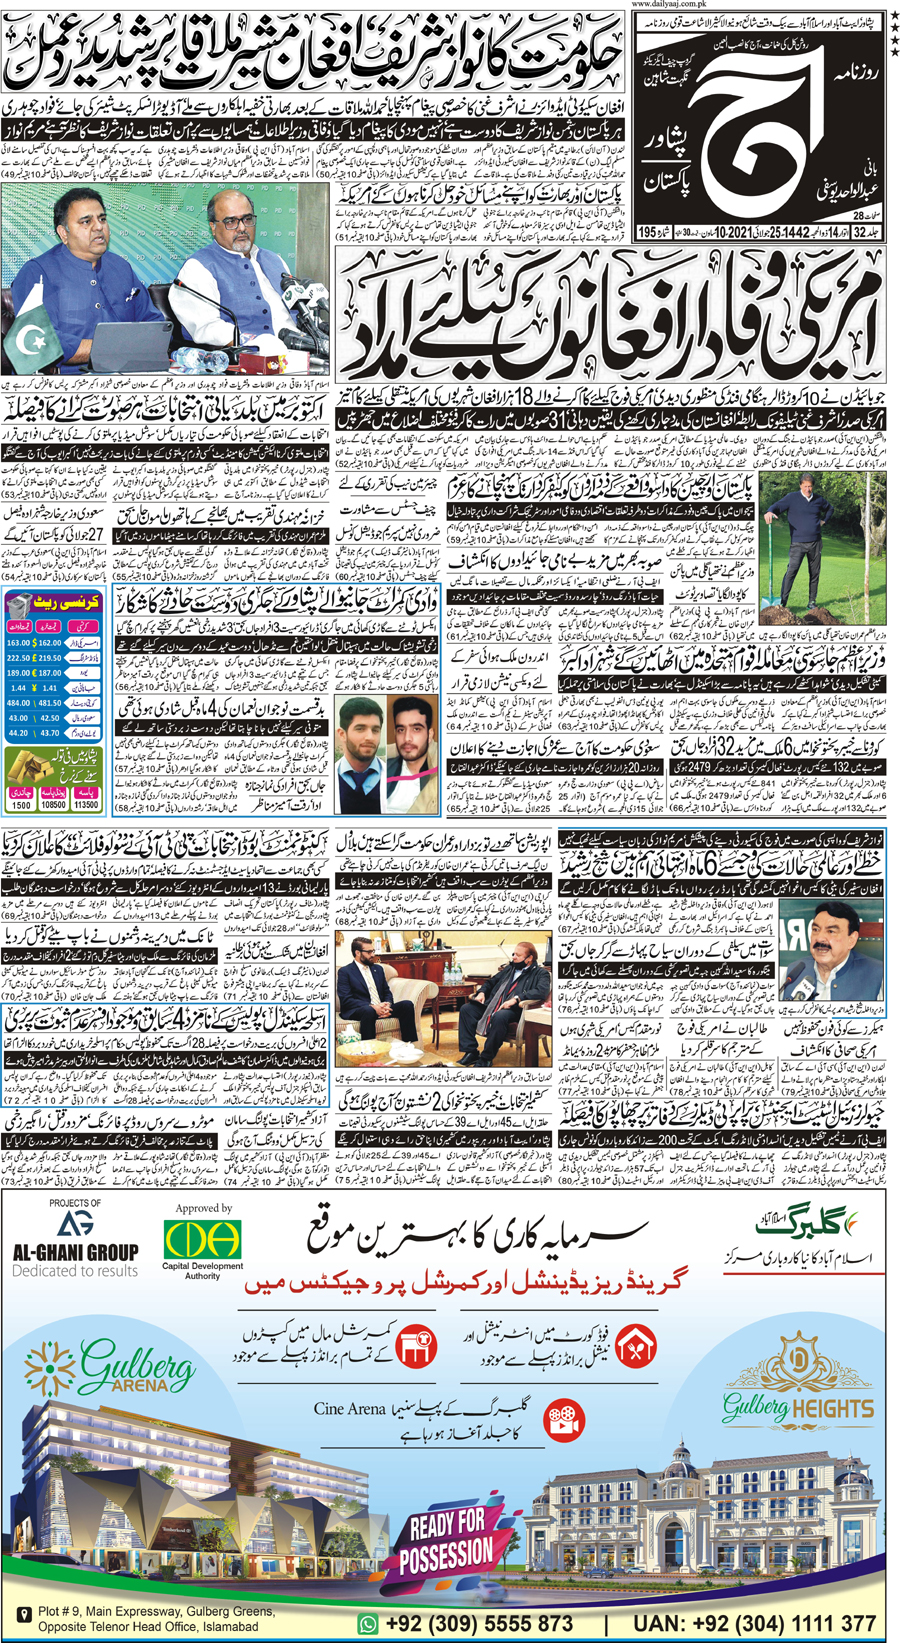 Epaper | 25 July, 2021 | Peshawar | Front Page | Daily Aaj